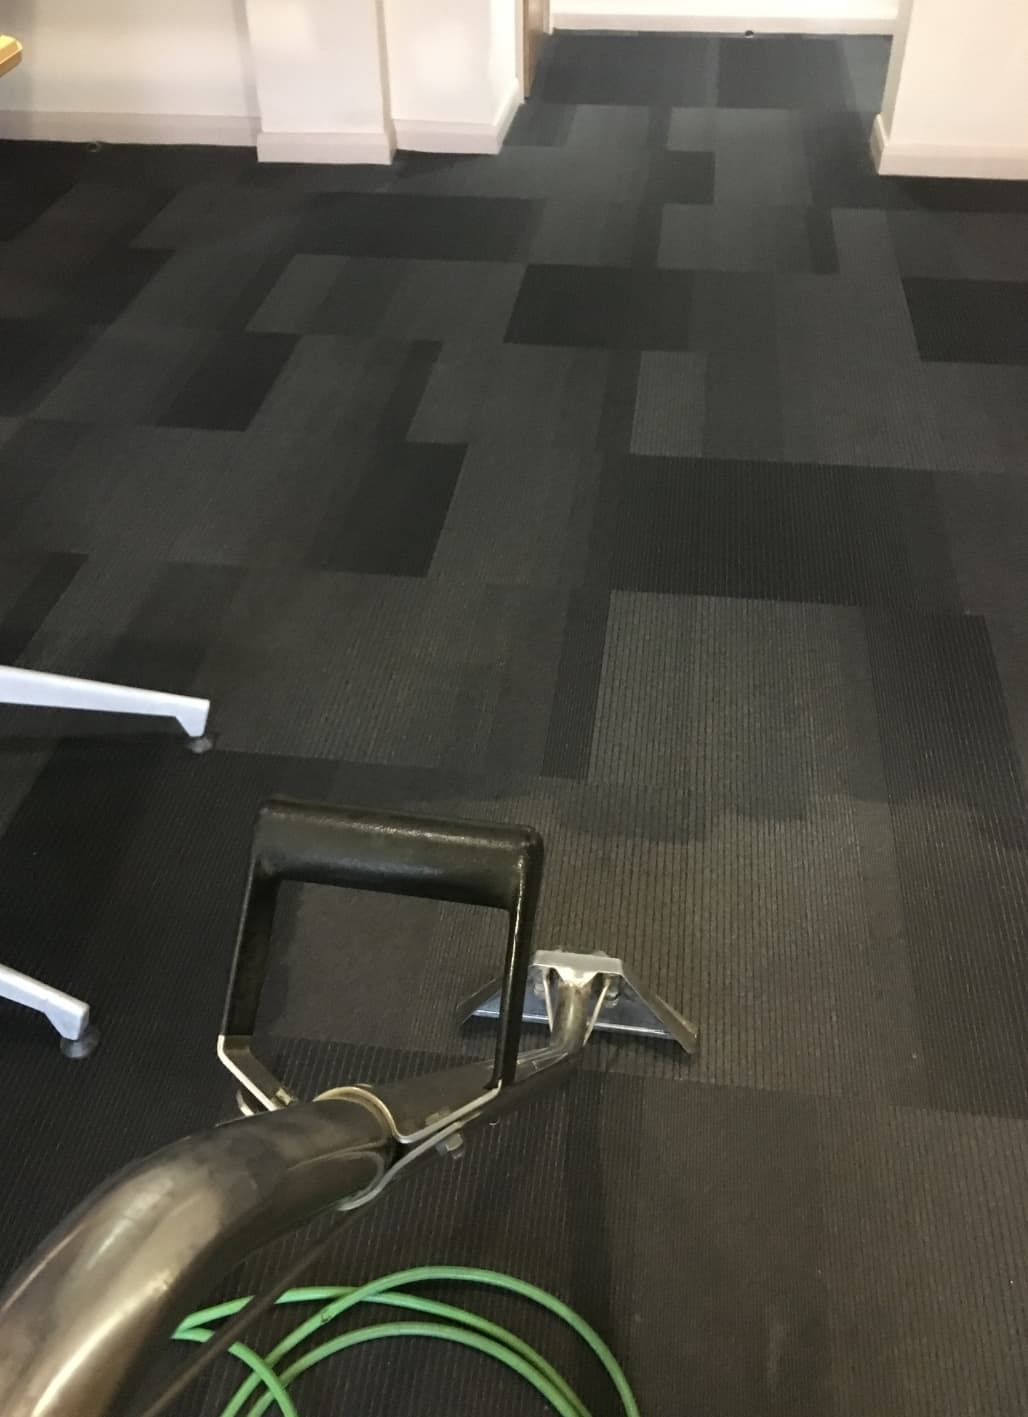 Carpet Cleaning Before & After Photos 5